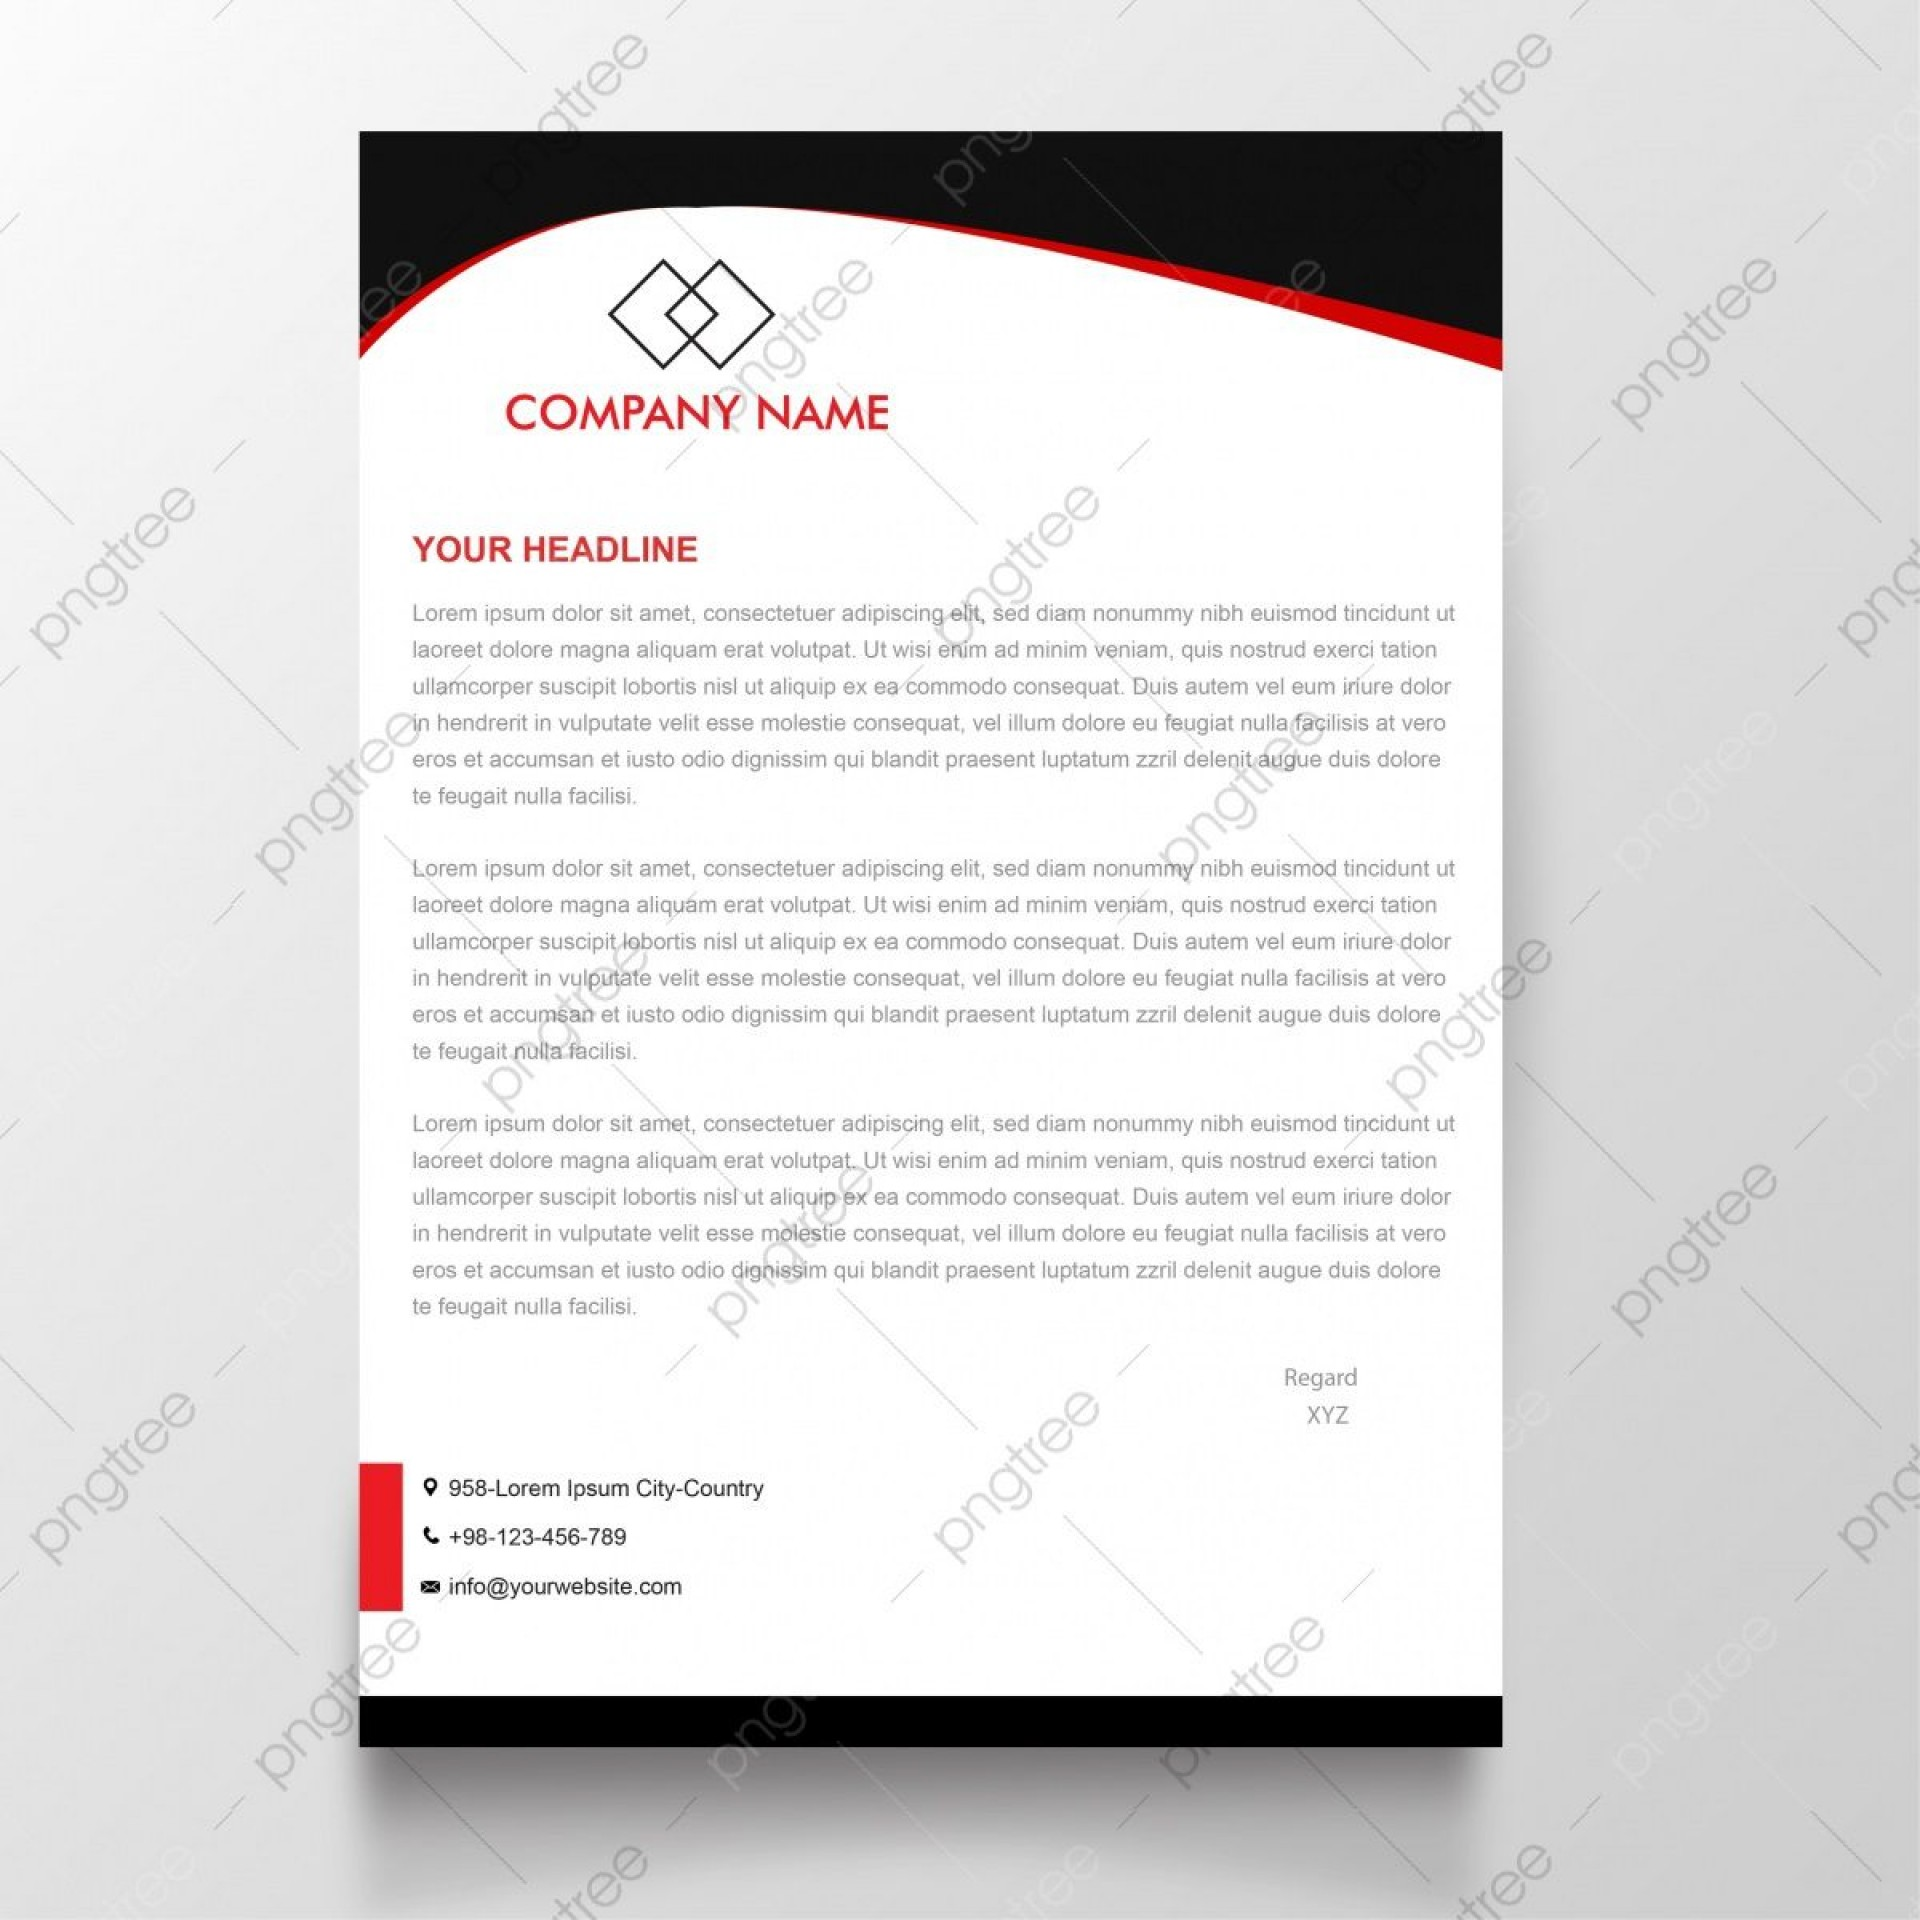 009 Remarkable Letterhead Template Free Download Doc High Def  Company Format1920